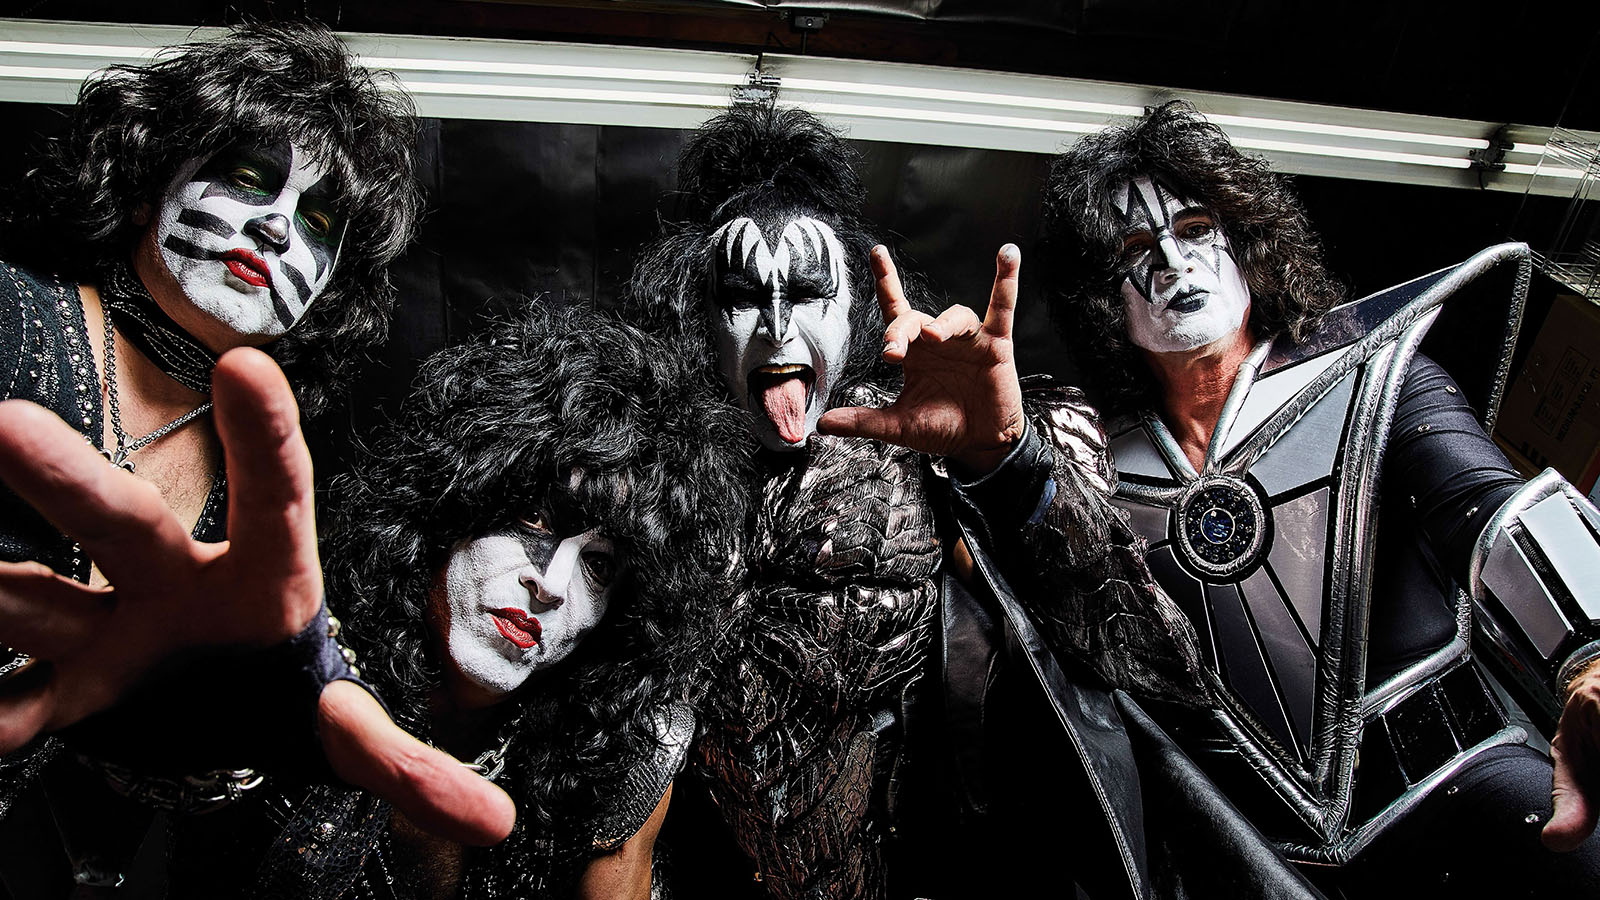 Kiss Legends Gene Simmons and Paul Stanley Talk Ace Frehley, Vinnie Vincent, Bruce Kulick and More | Guitarworld